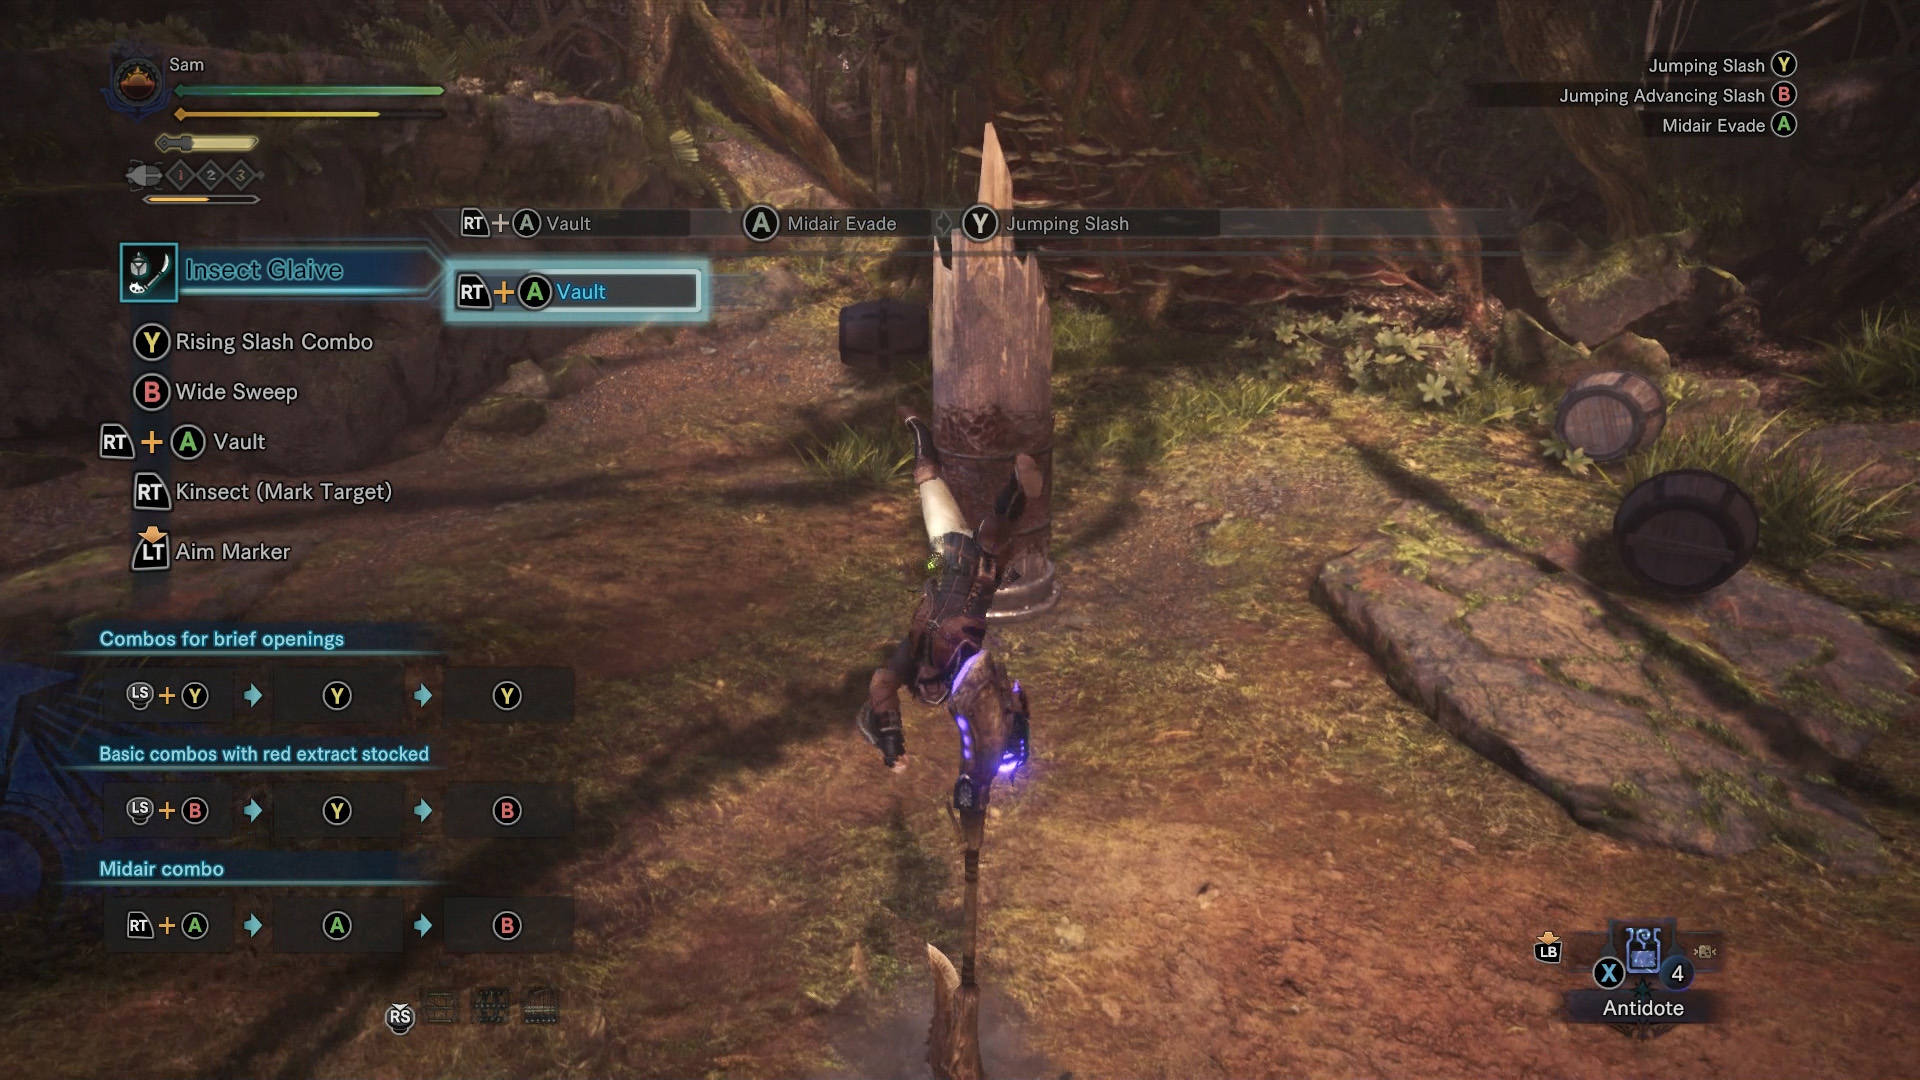 Monster Hunter World - Insect Glaive and Kinsects | Shacknews